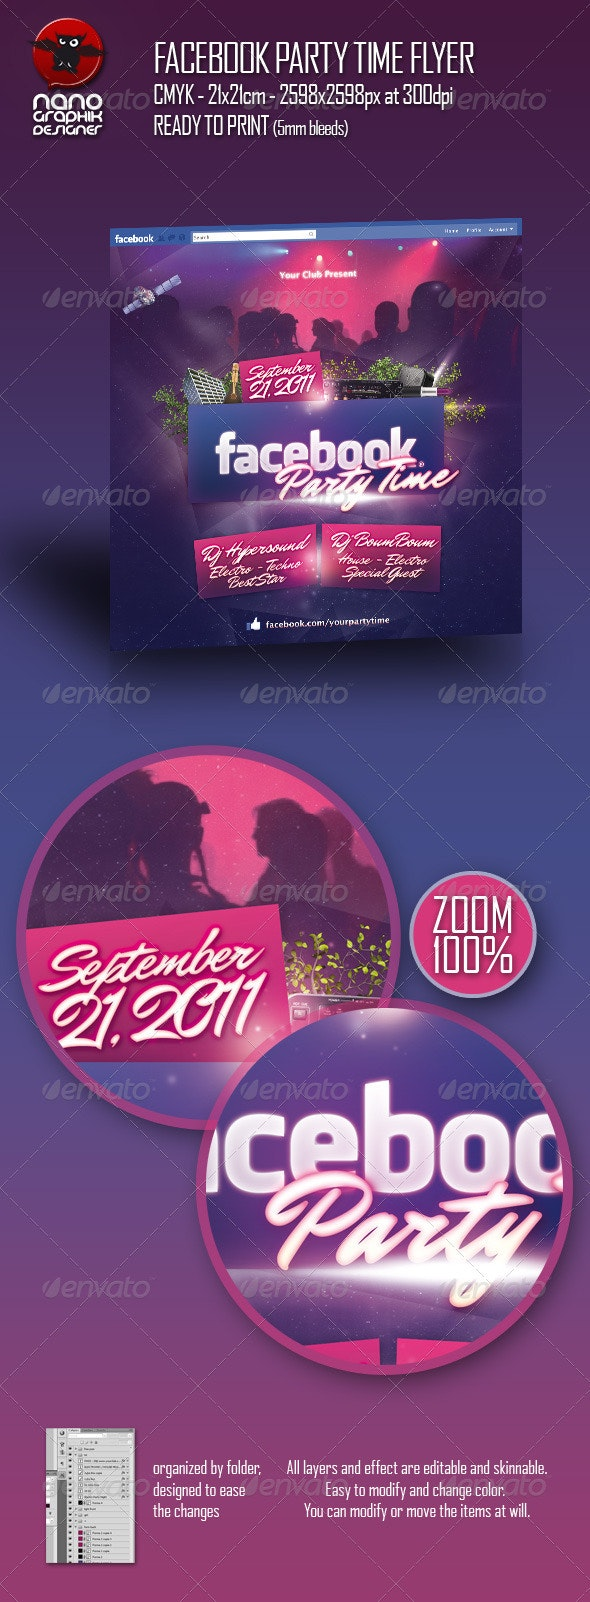 Facebook Party Time Flyer - Clubs & Parties Events